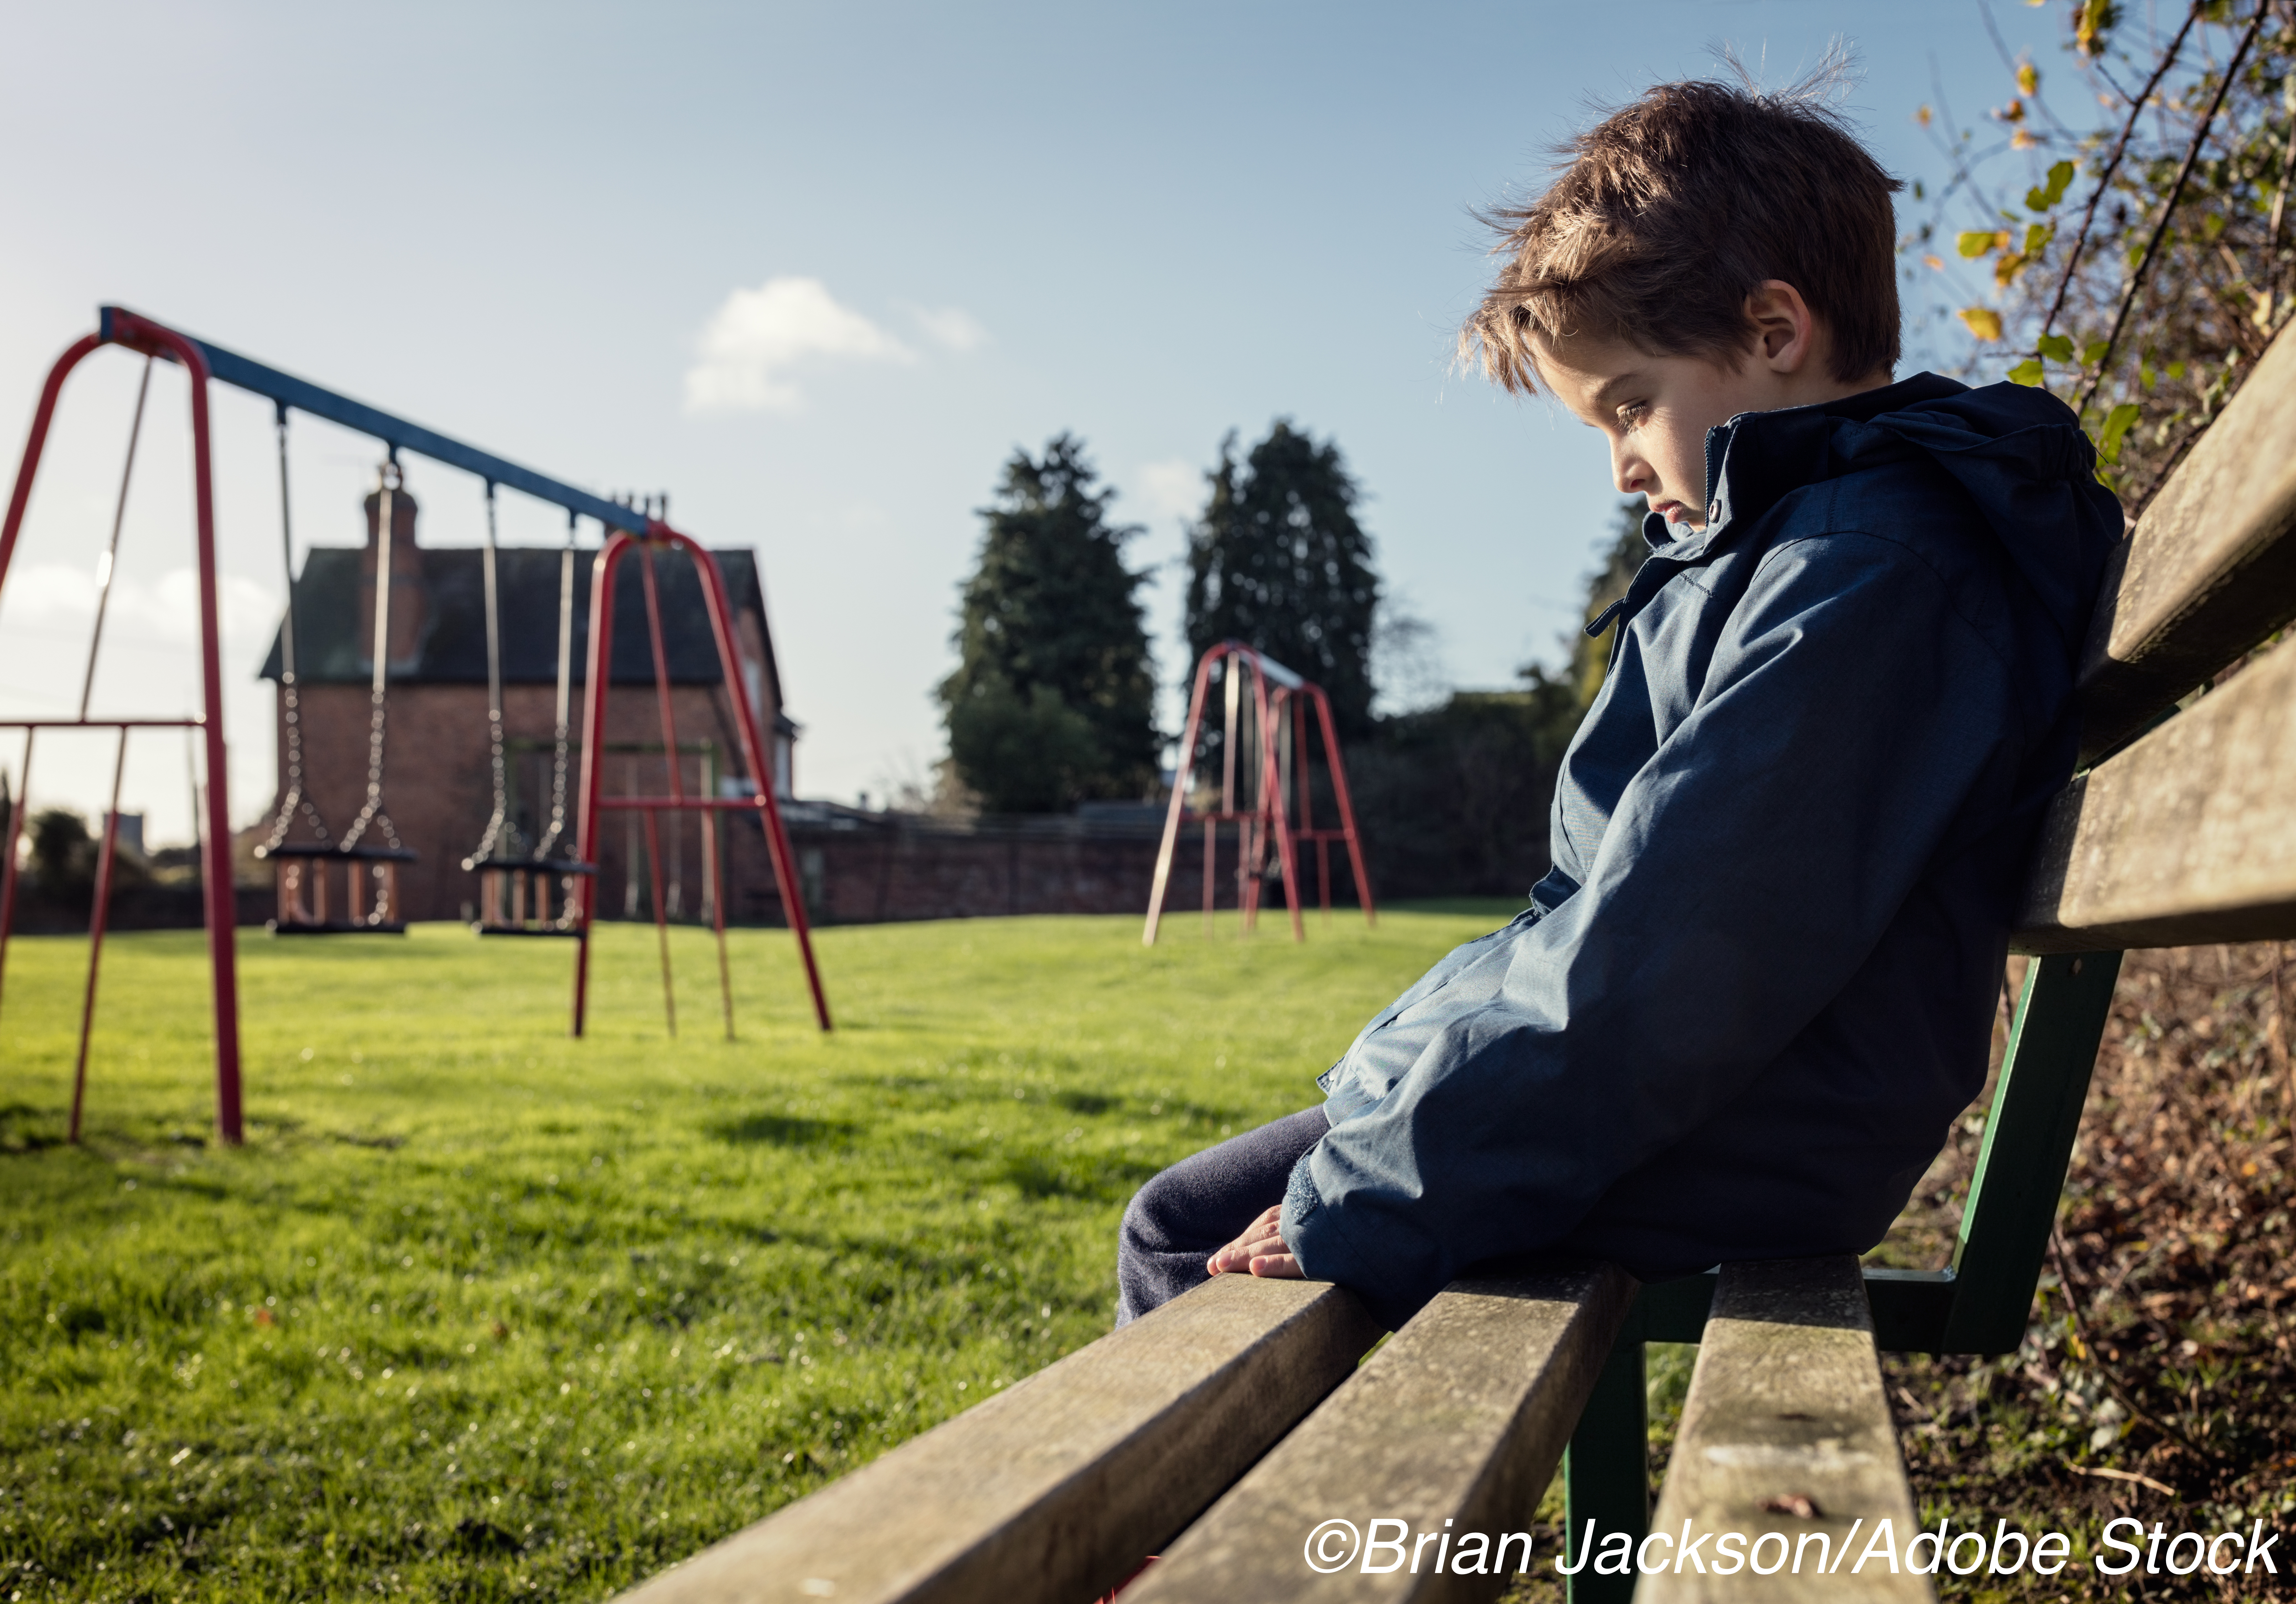 Fluoxetine Alone or With CBT Best for Depressed Kids